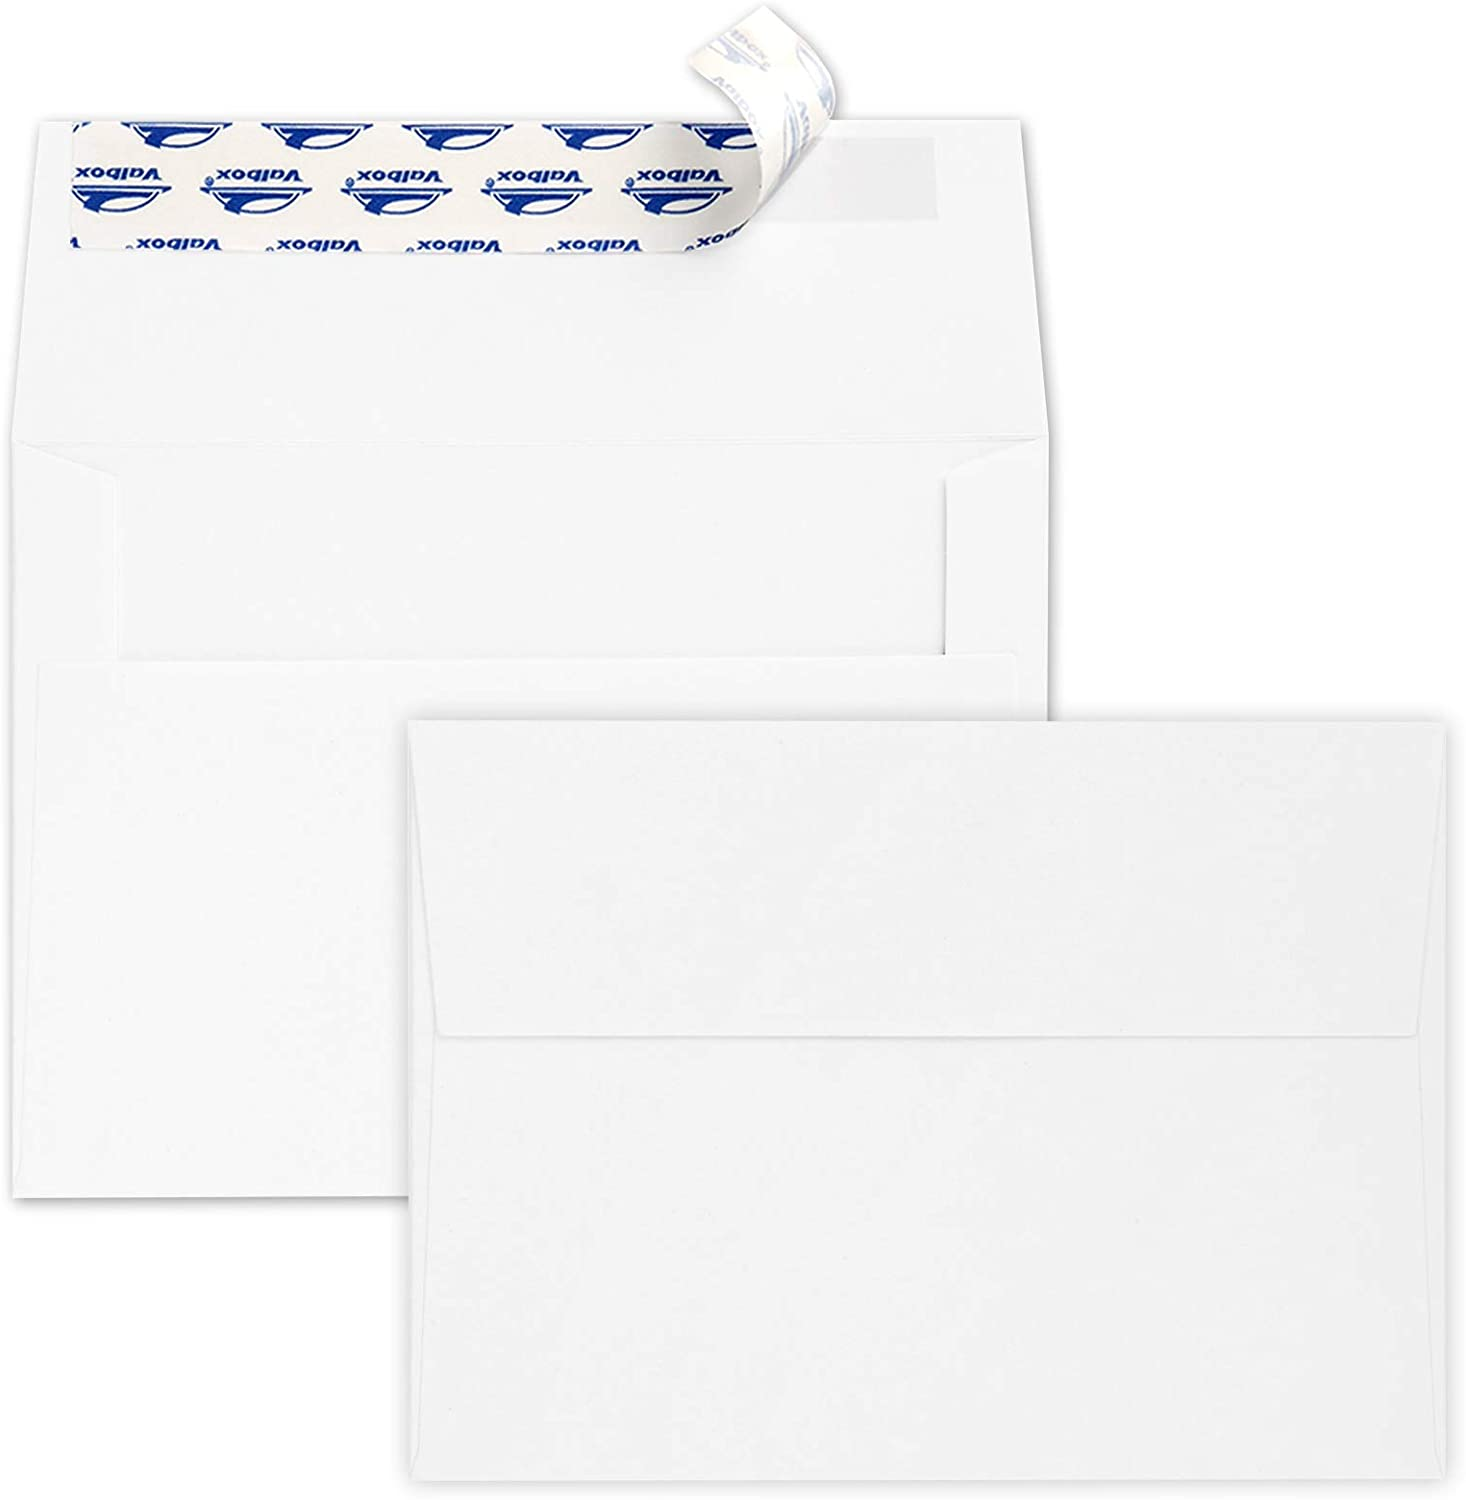 ValBox 200 Qty A7 Invitation Envelopes 5 x 7, 120GSM White Kraft Paper Envelopes for 5x7 Cards, Self Seal, Weddings, Invitations, Baby Shower, Stationery, Office, 5.25 x 7.25 Inches : Office Products